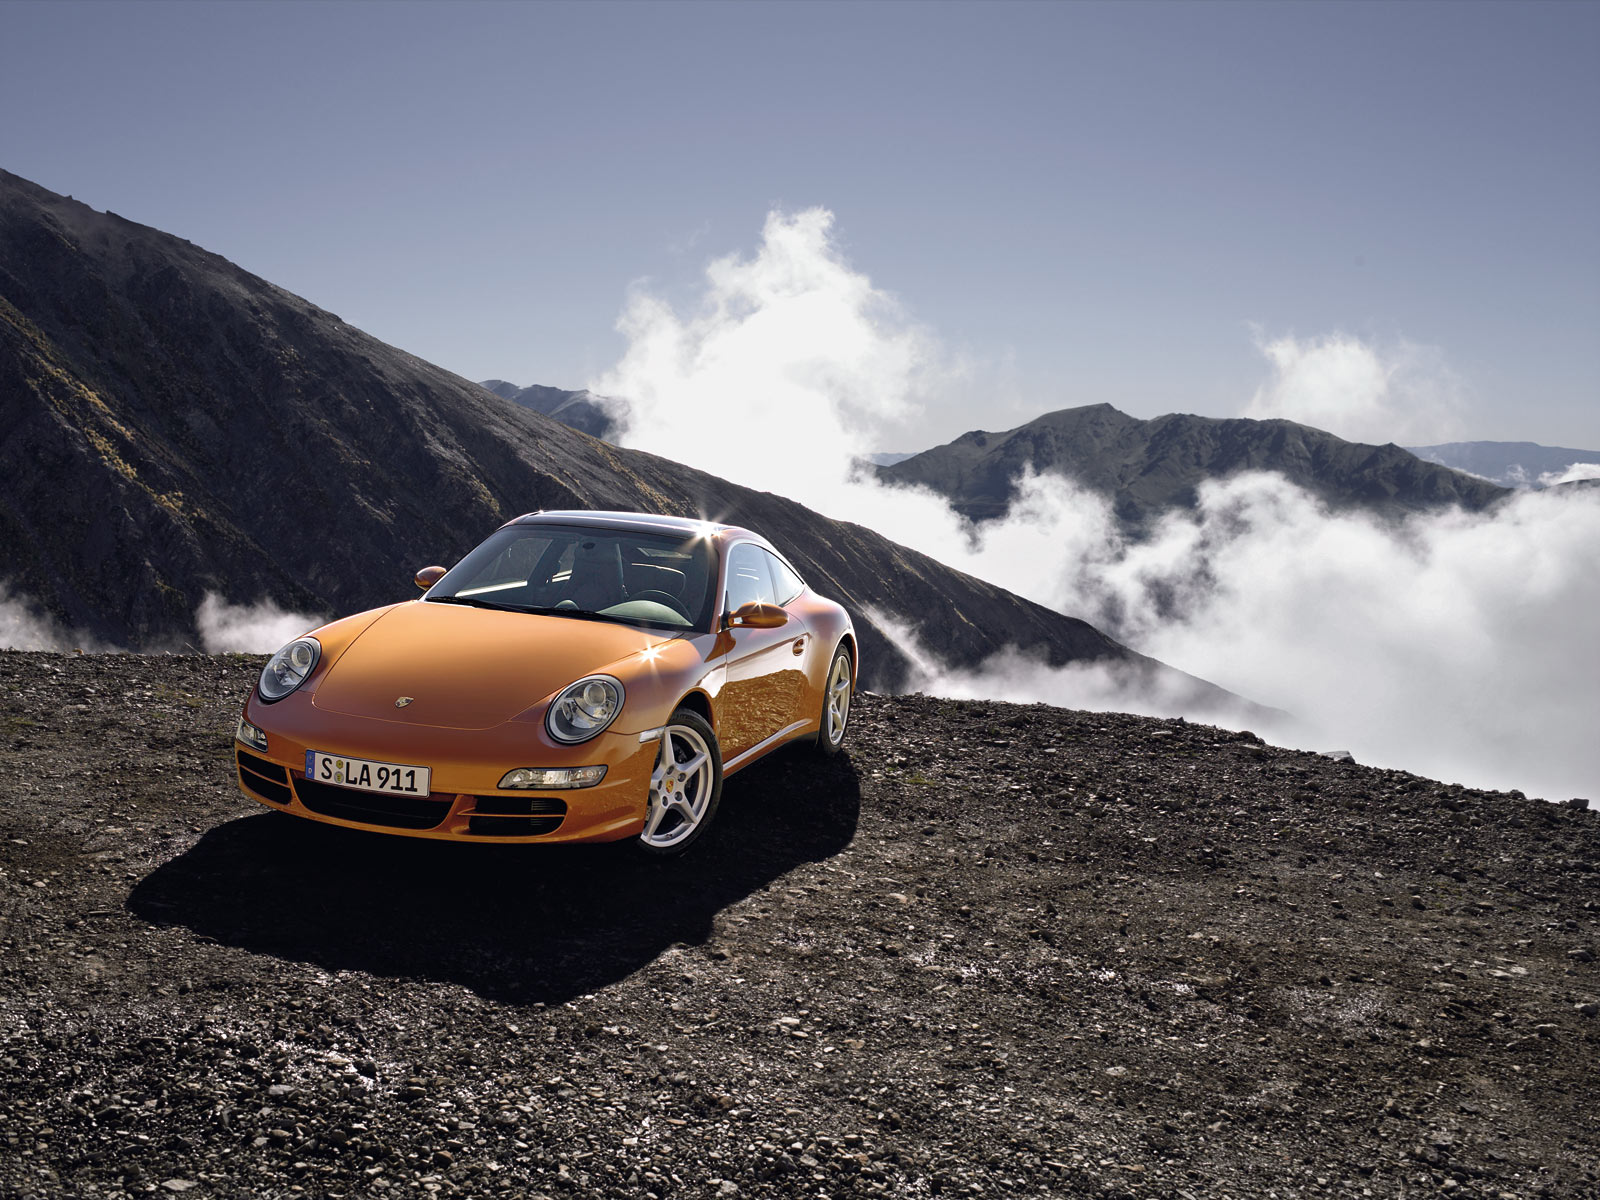 Porsche 997 911 Targa photo 57537